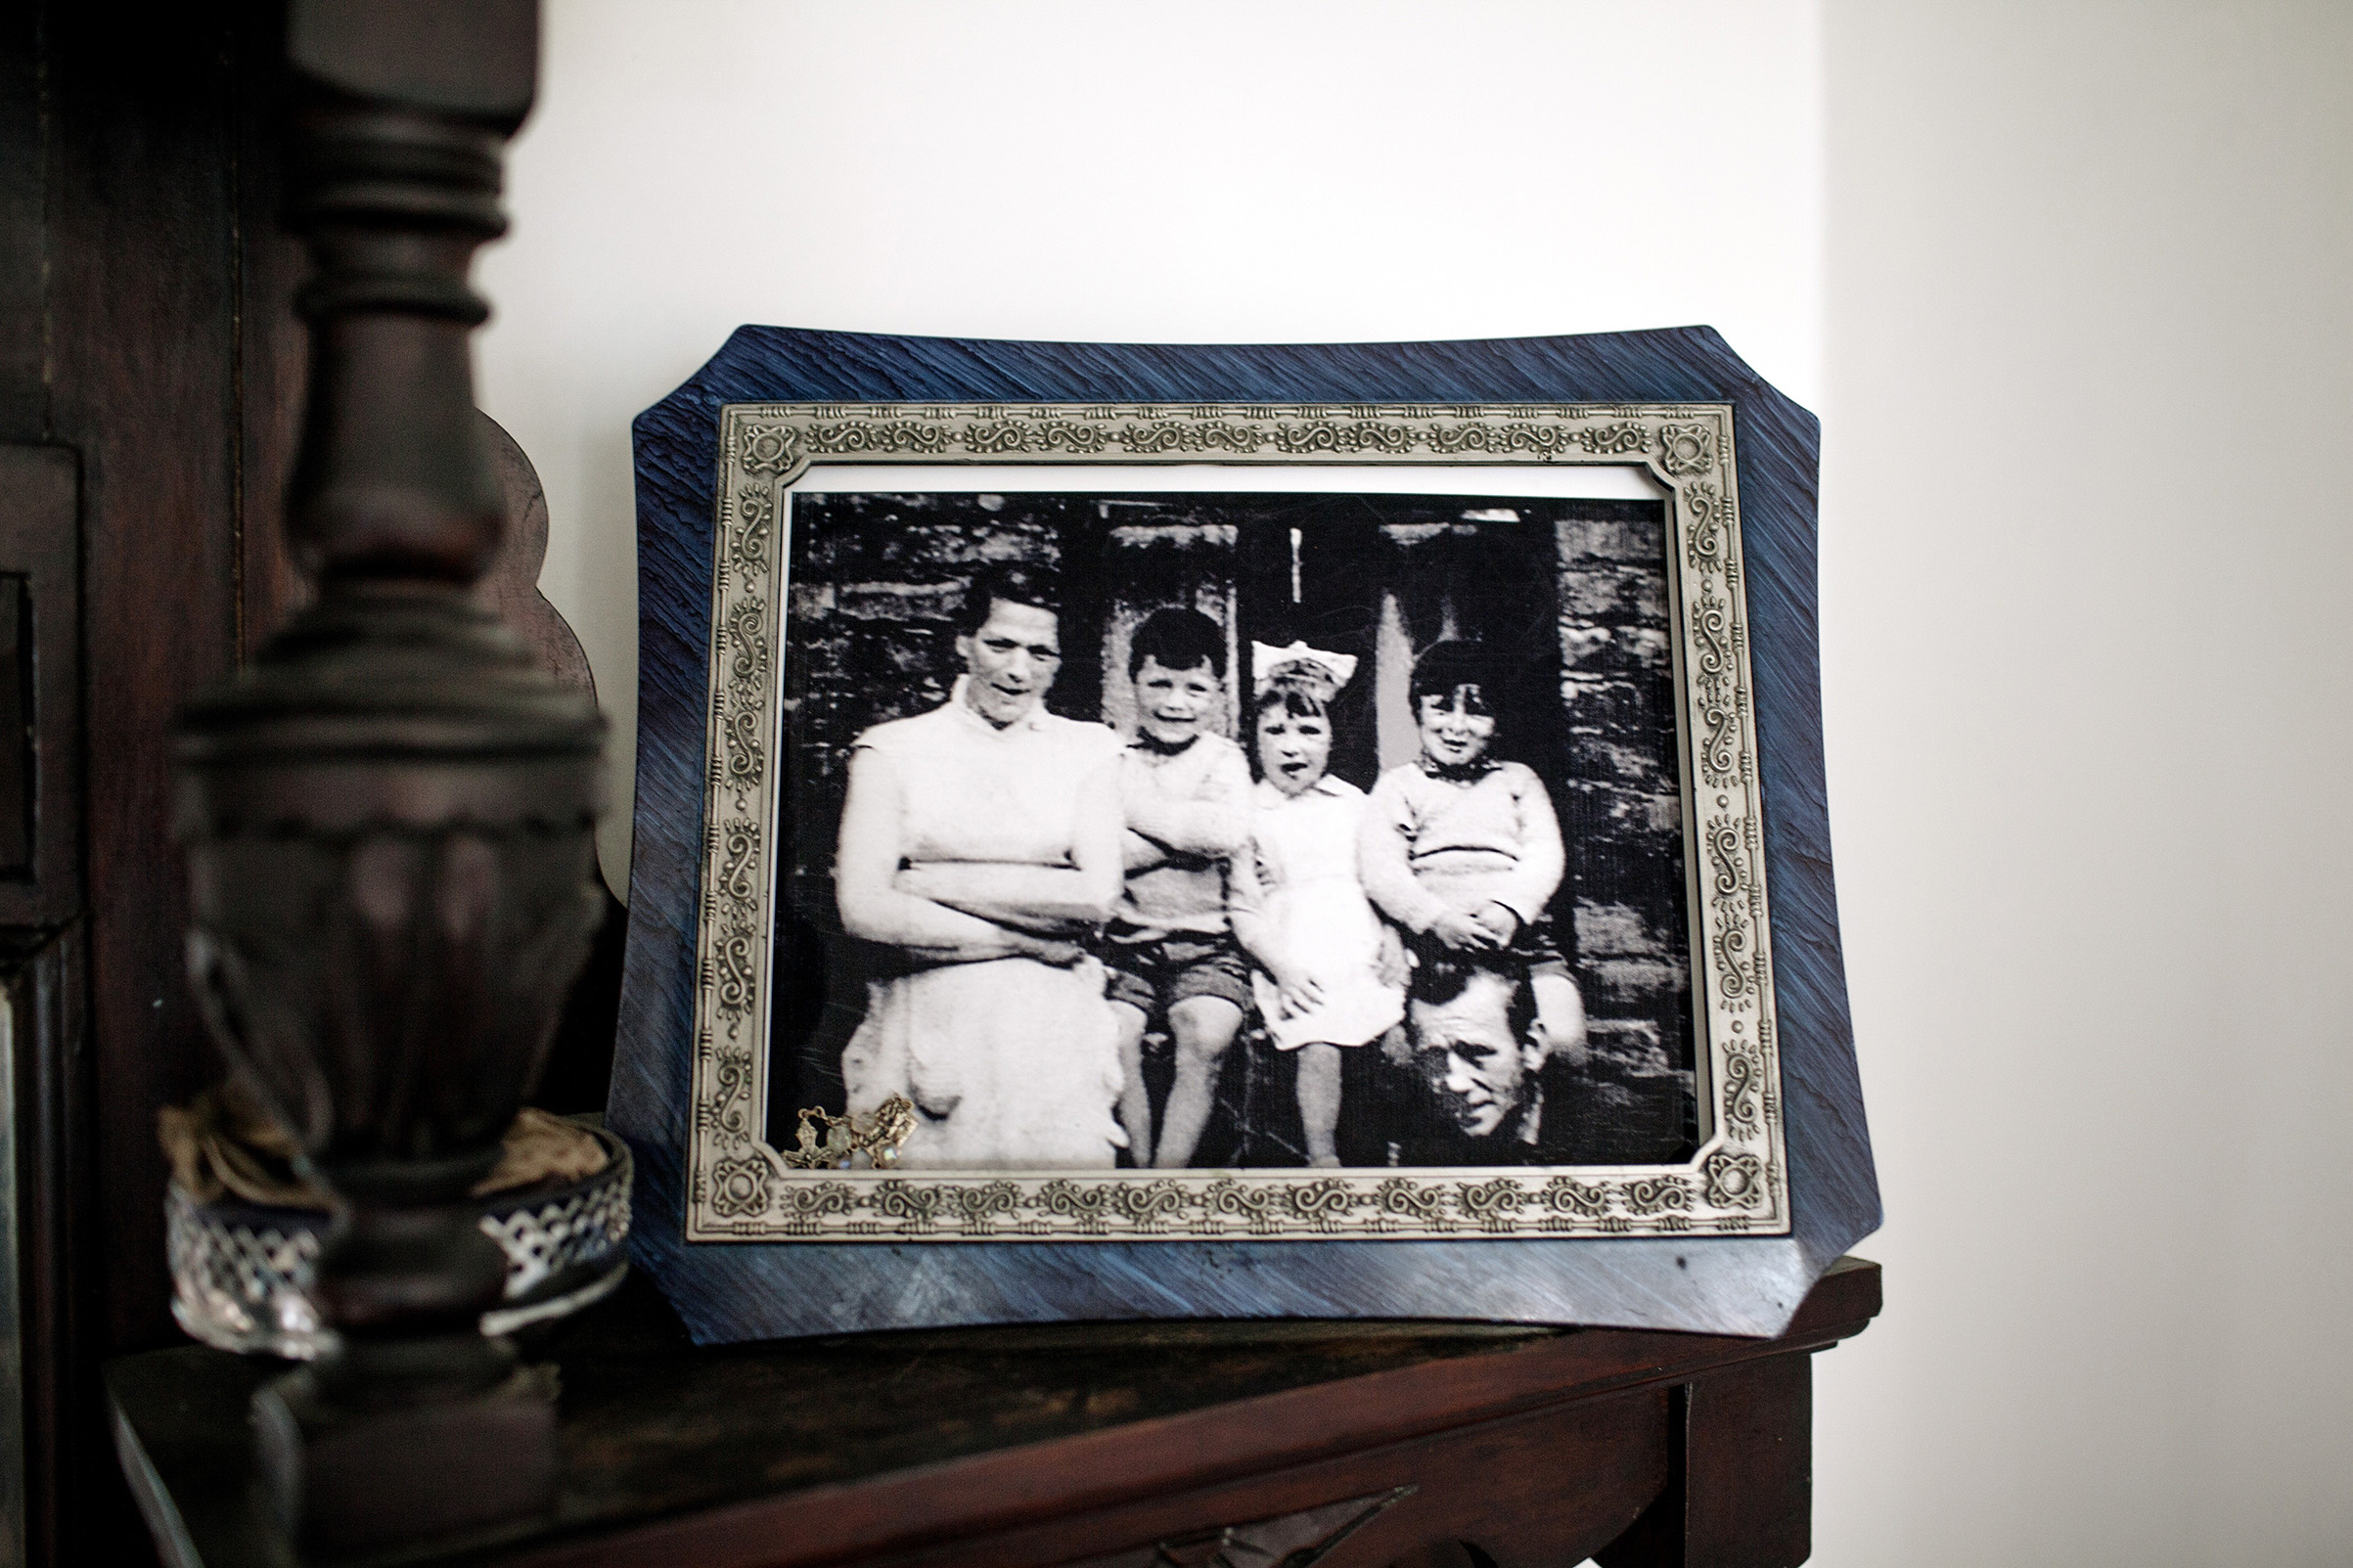 A portrait of the McConville family in the home of Helen McKendry, daughter of Jean McConville (left), a widowed Belfast mother of 10 who was killed in 1972.